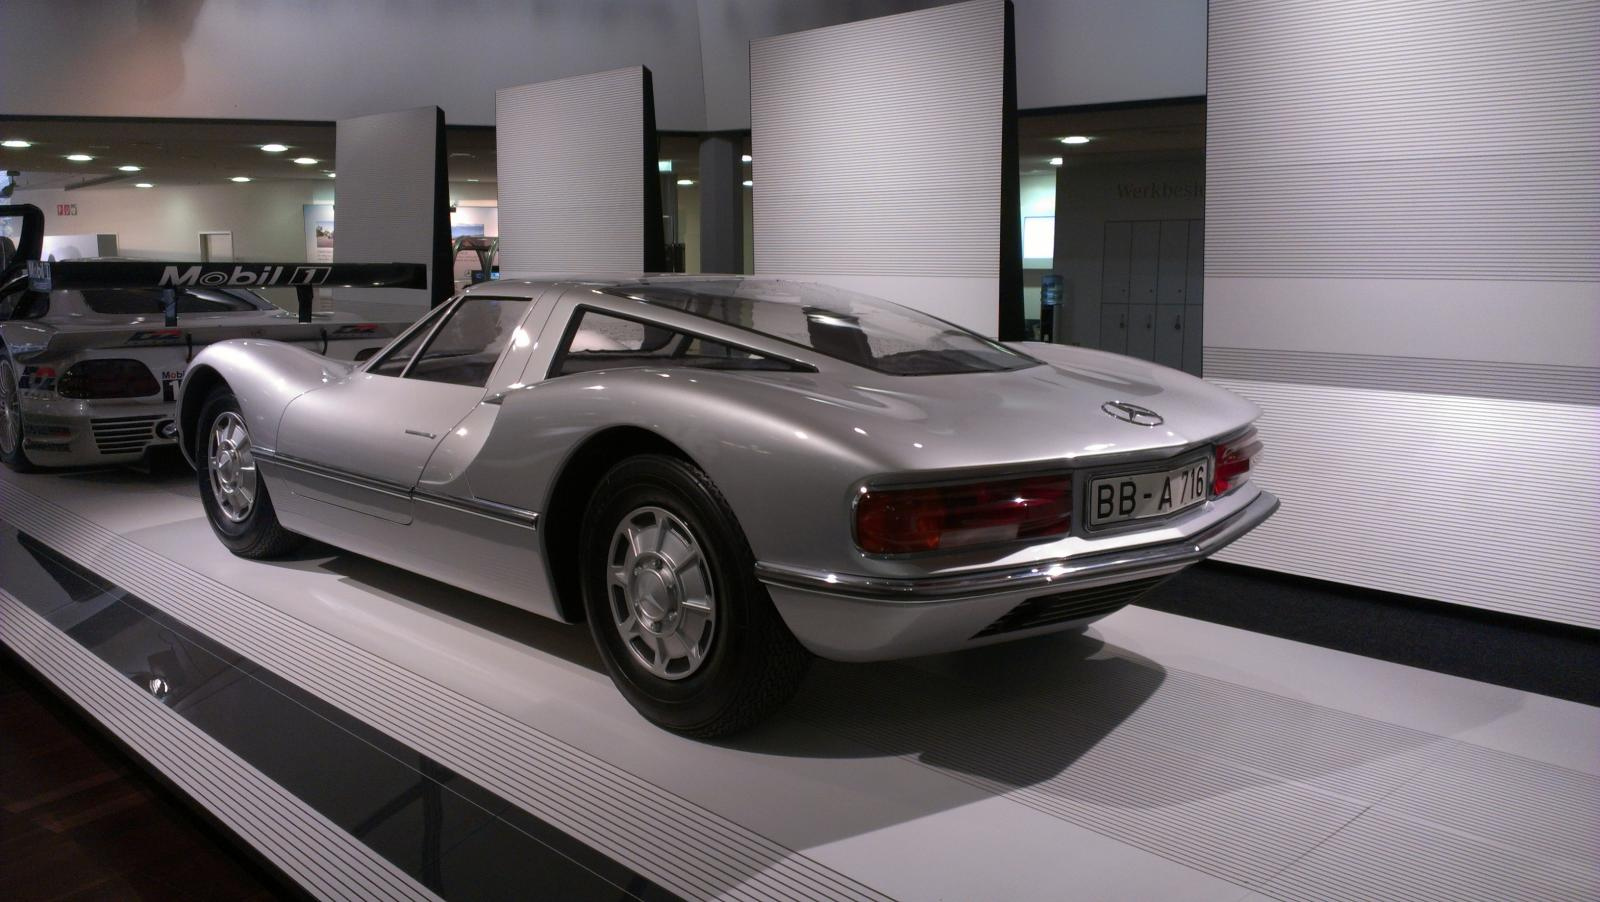 10 interesting facts about mercedes benz c111 mercedes benz for Facts about mercedes benz